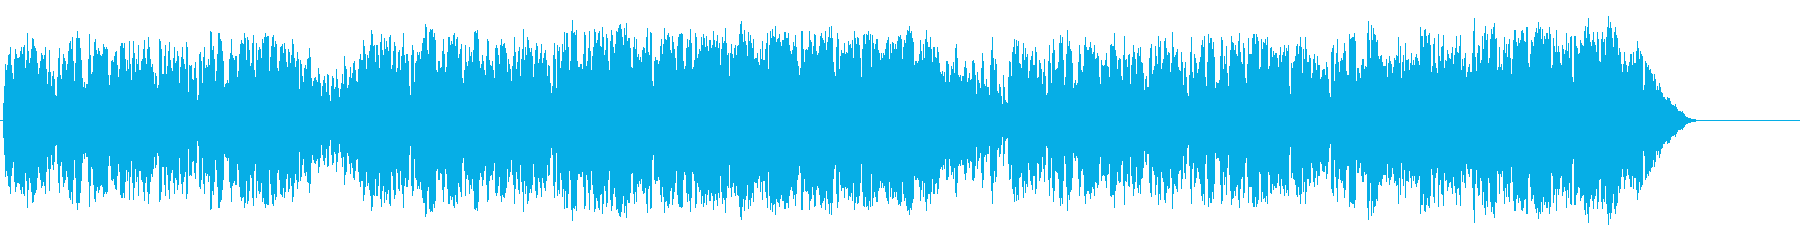 Festive, hilarious country's reproduced waveform